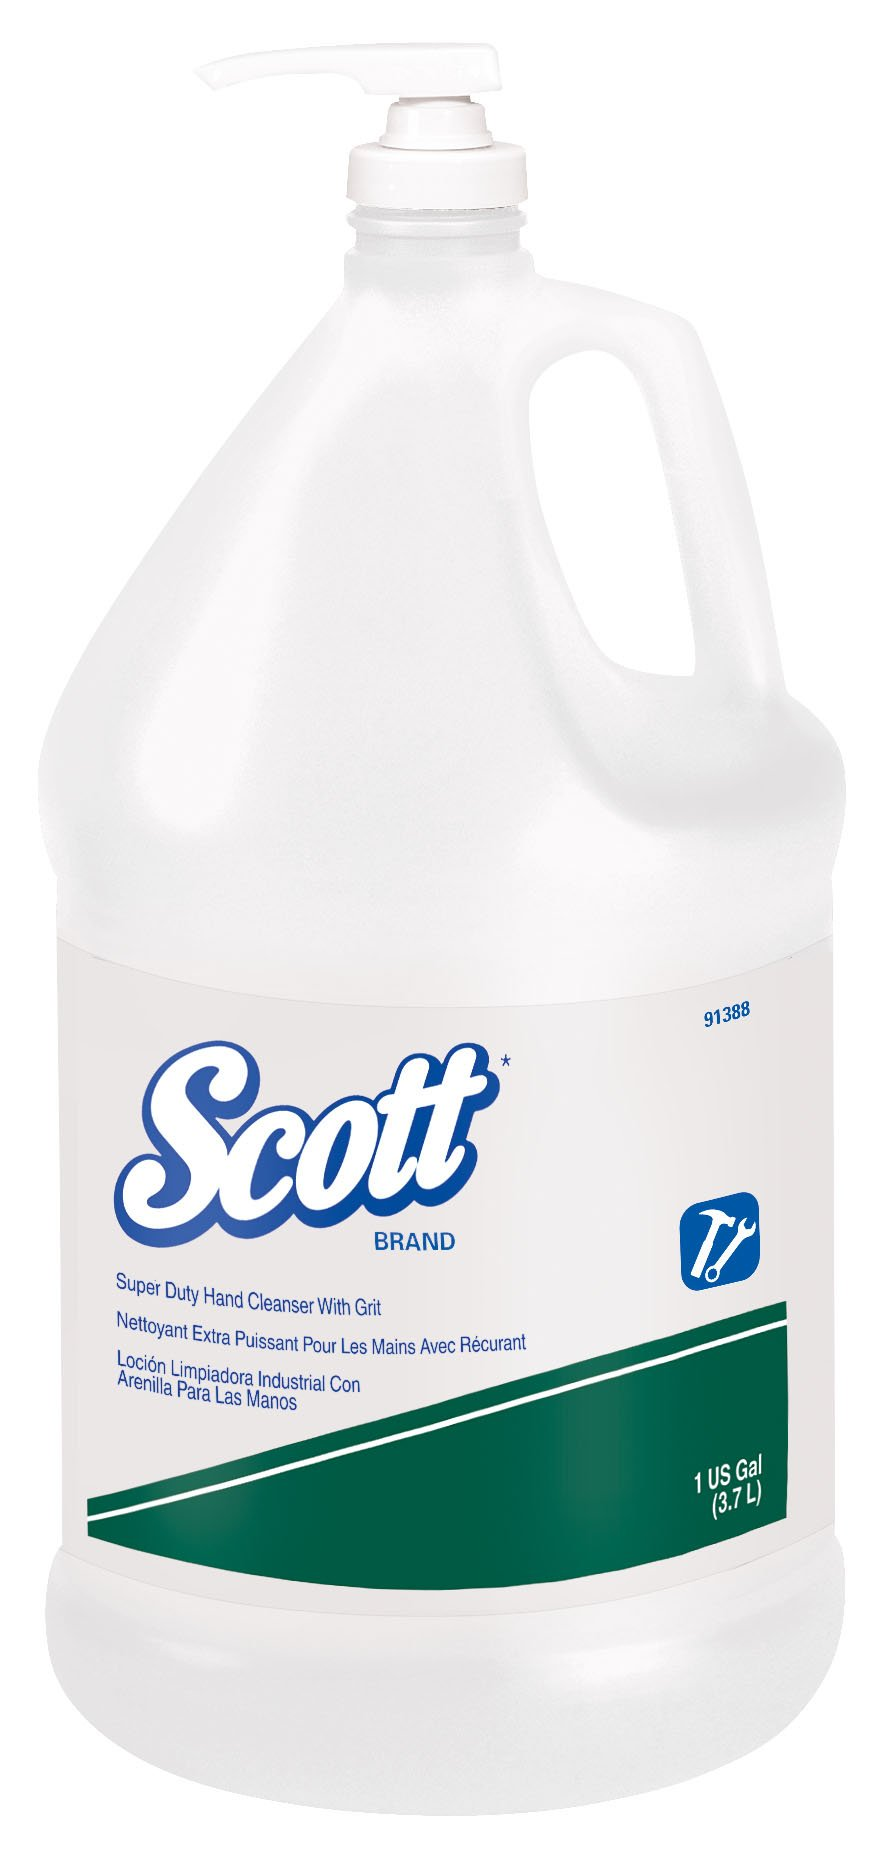 Scott Super Duty Grit Hand Cleanser (91388), Green, Citrus Scent, 1.0 Gallon, 4 Bottles / Case